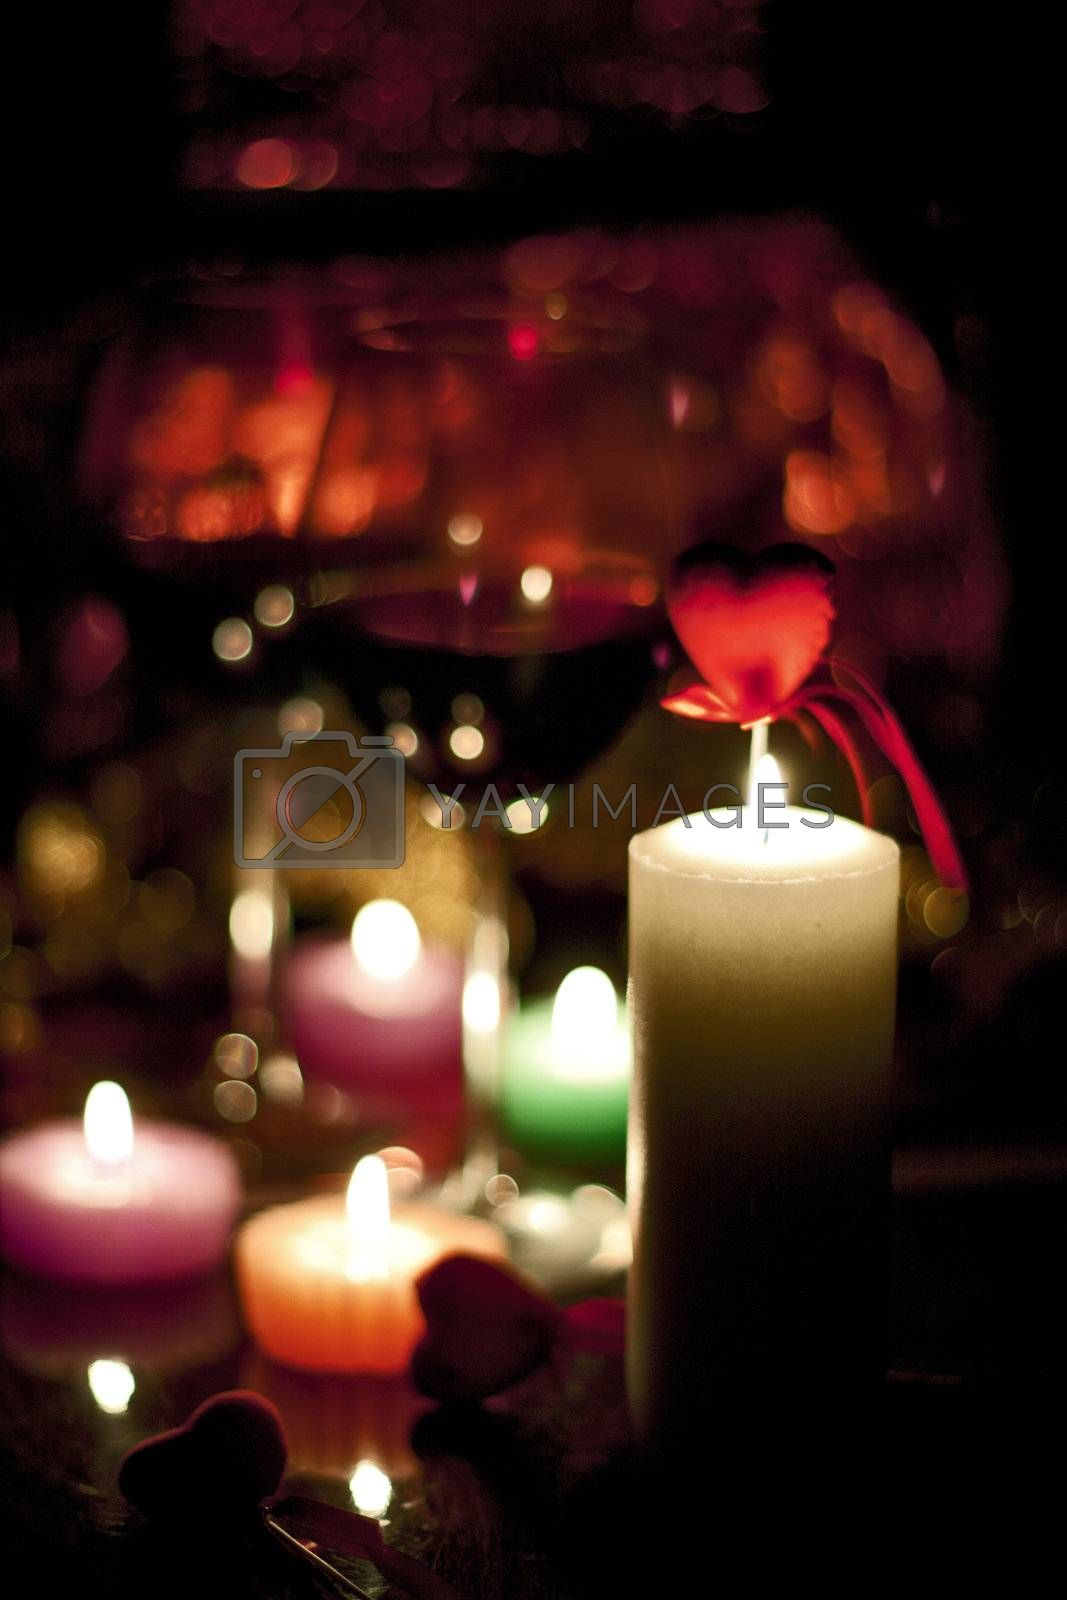 Candles and romance by zokov